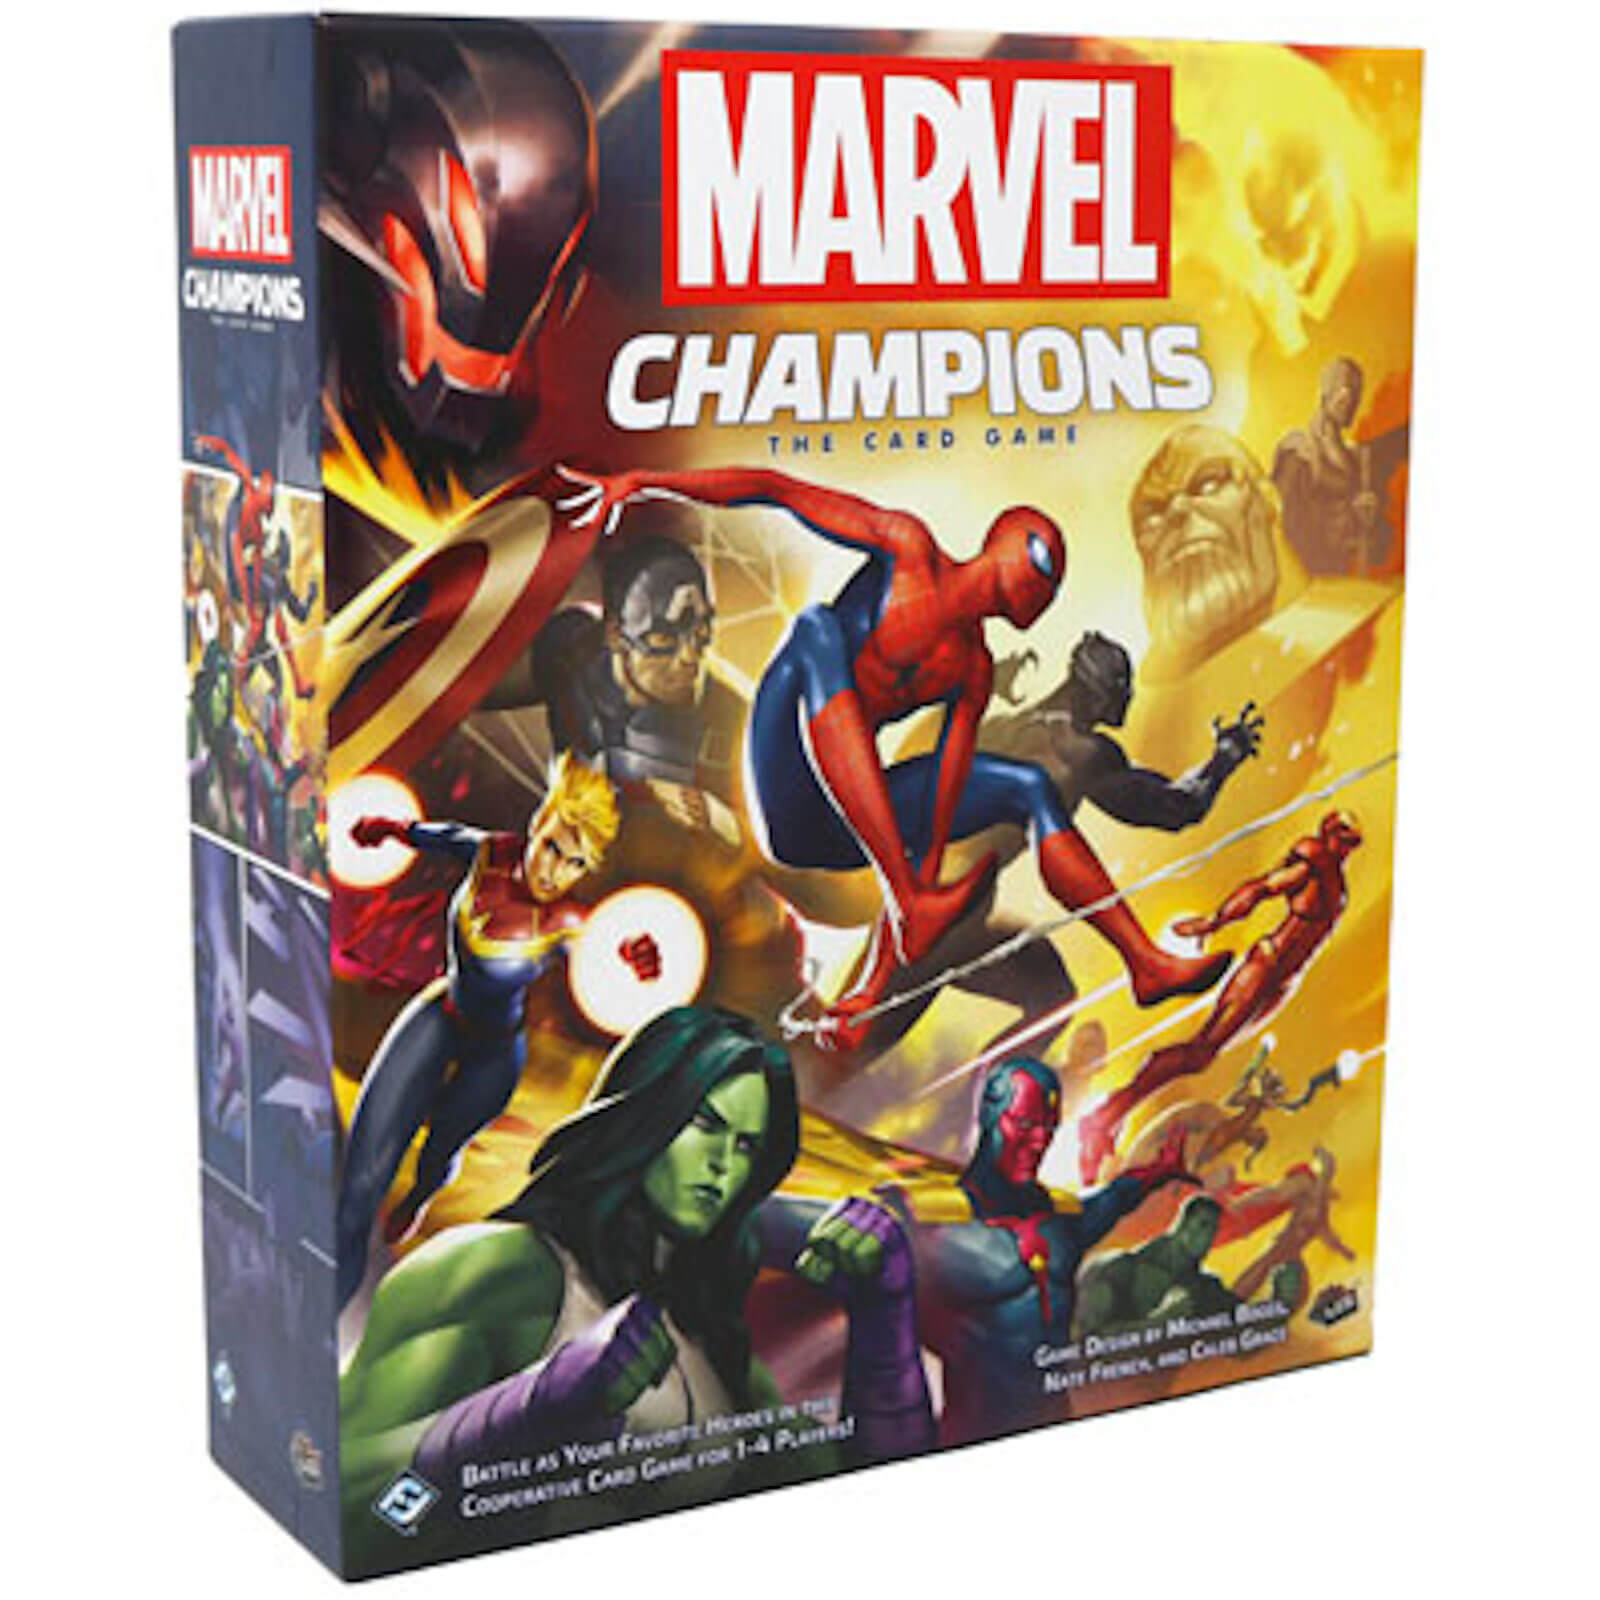 Image of Marvel Champions: The Card Game